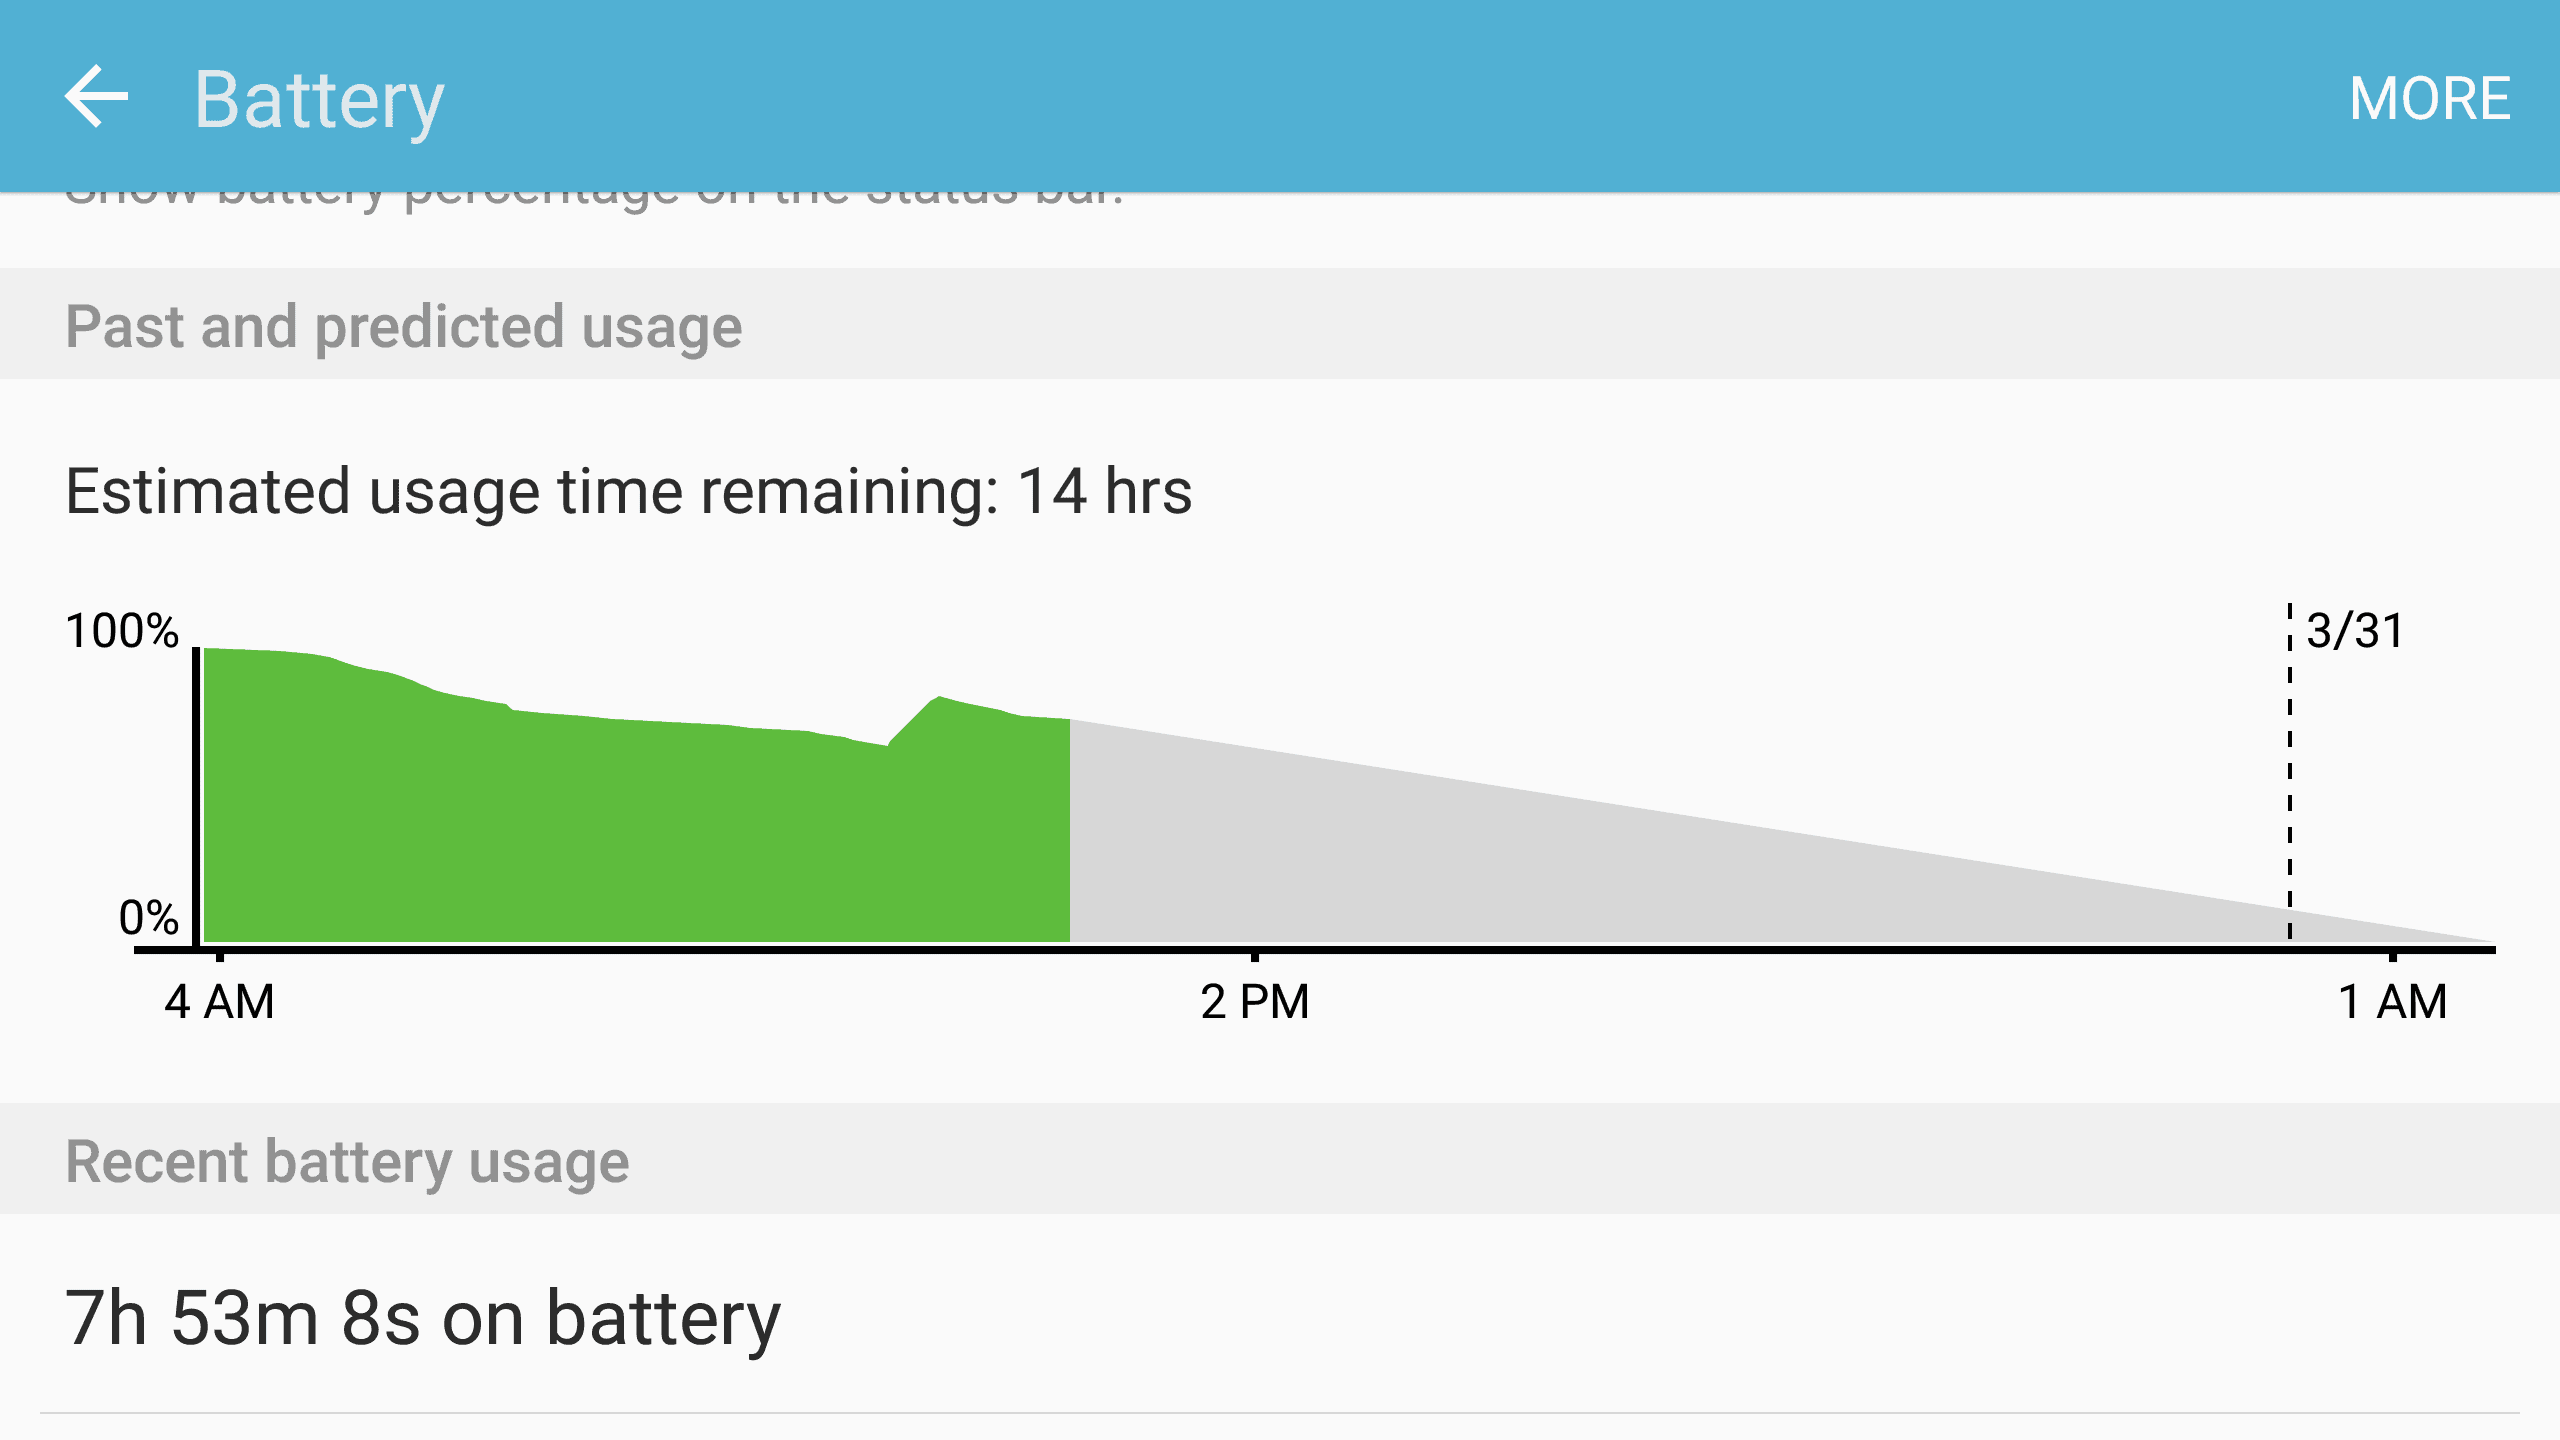 Battery life on Samsung Galaxy s7